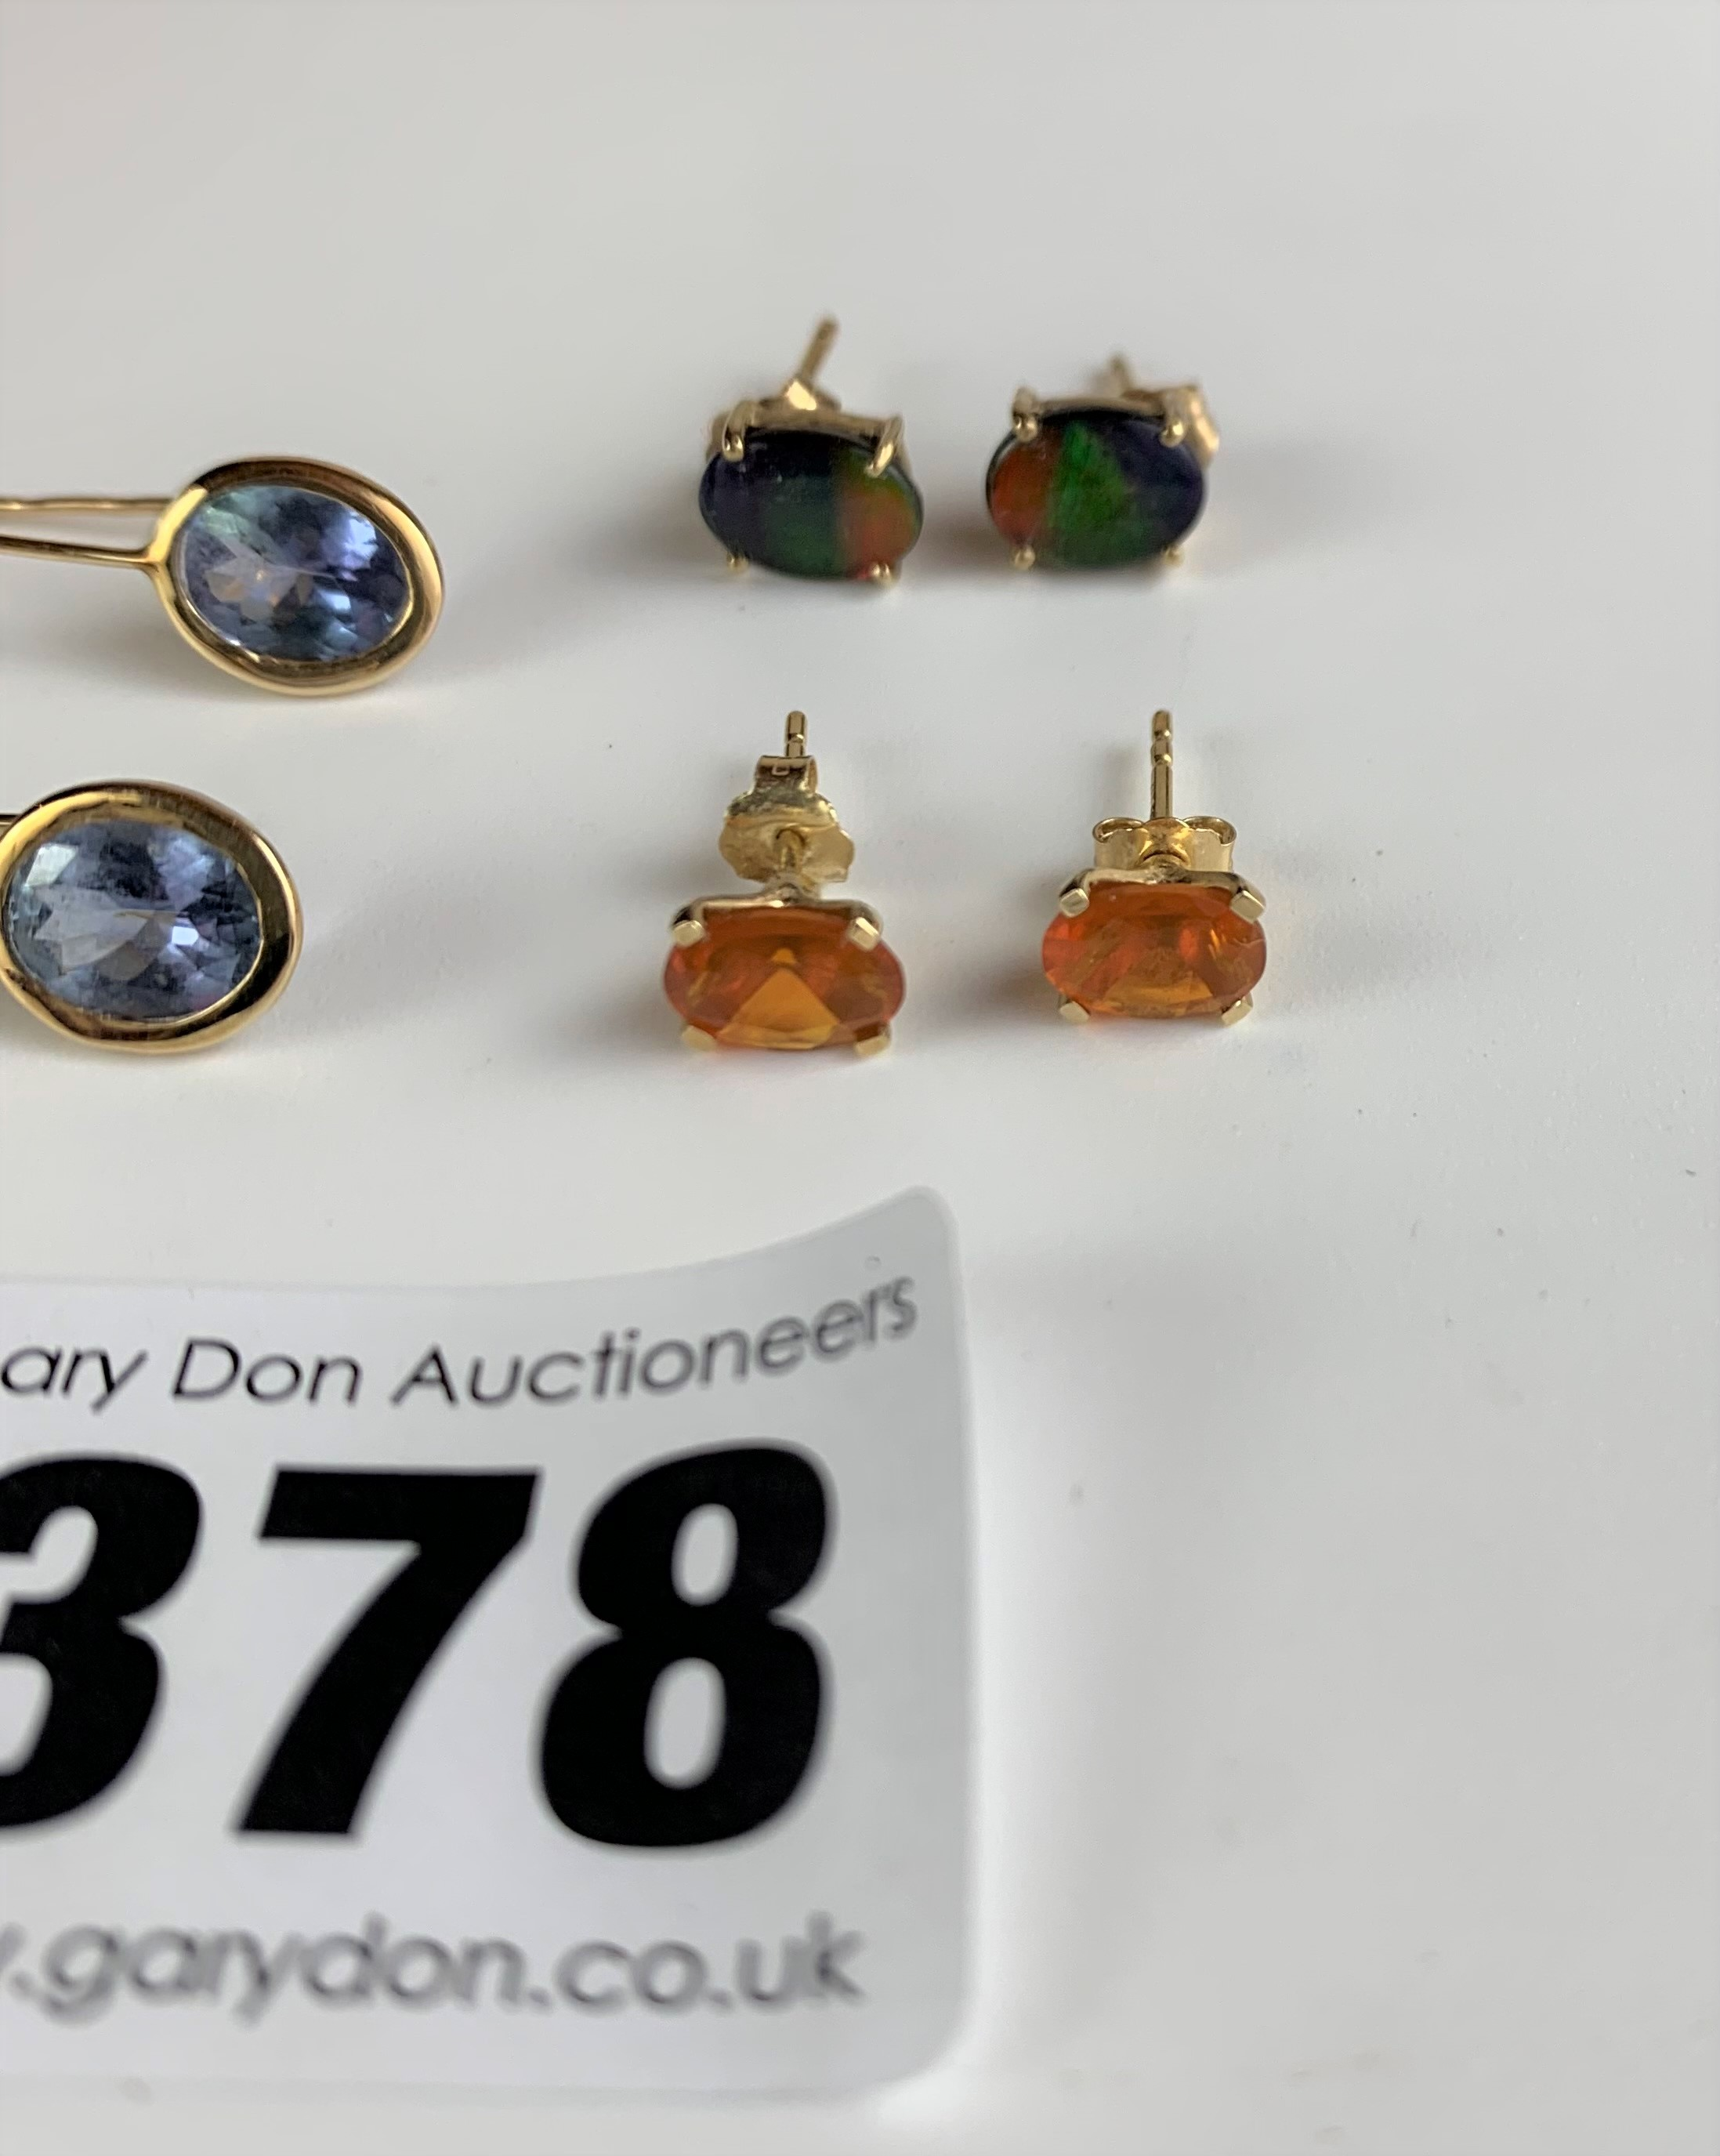 3 pairs of 10k gold earrings – green stone studs, orange stone studs and blue stone drops, total - Image 3 of 5